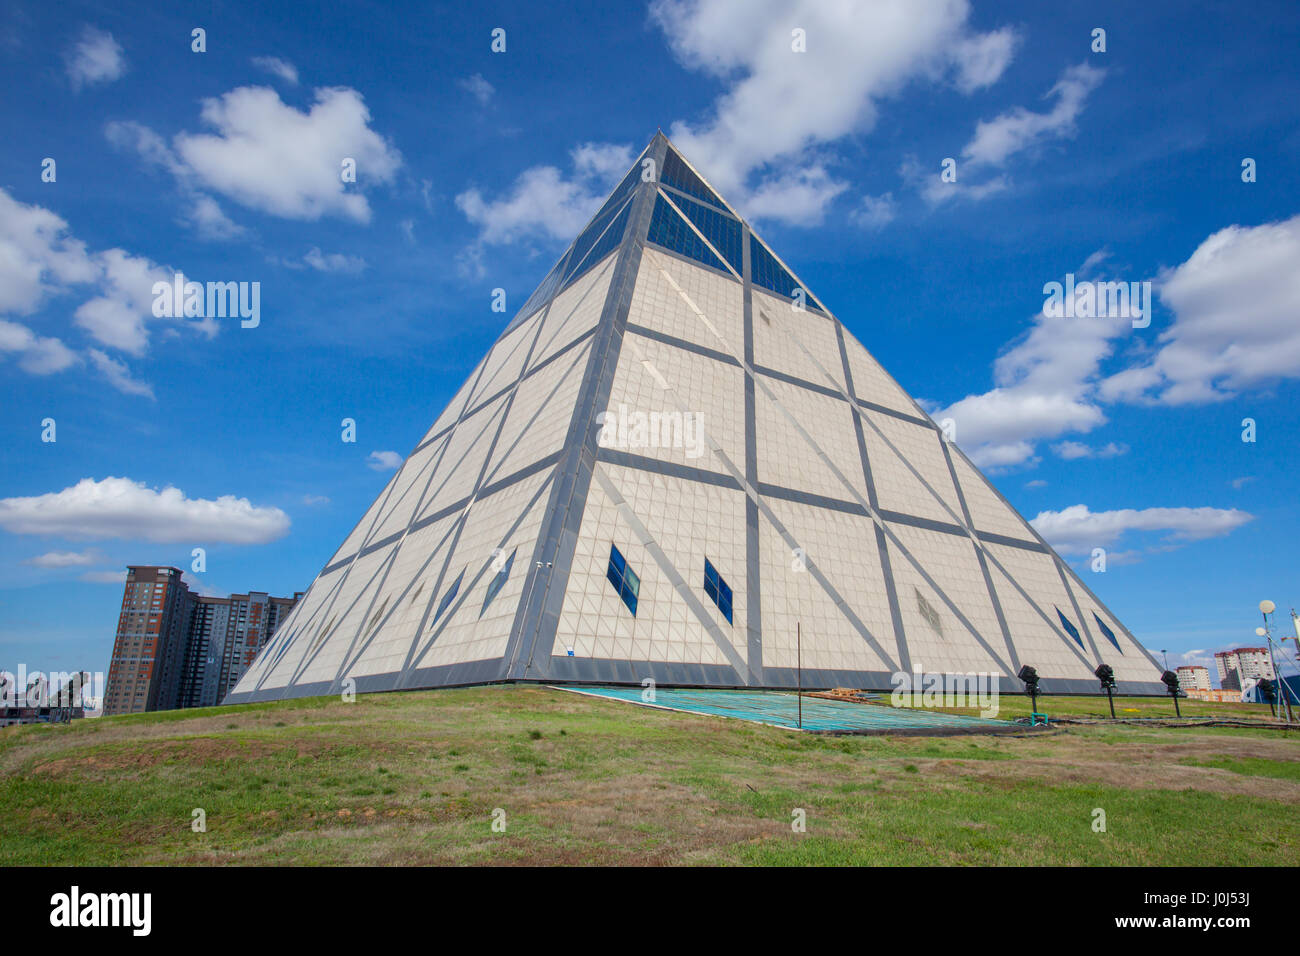 Pyramid - Palace of Peace and Accord. On a sunny day in Astana, capital of Kazakhstan - Stock Image